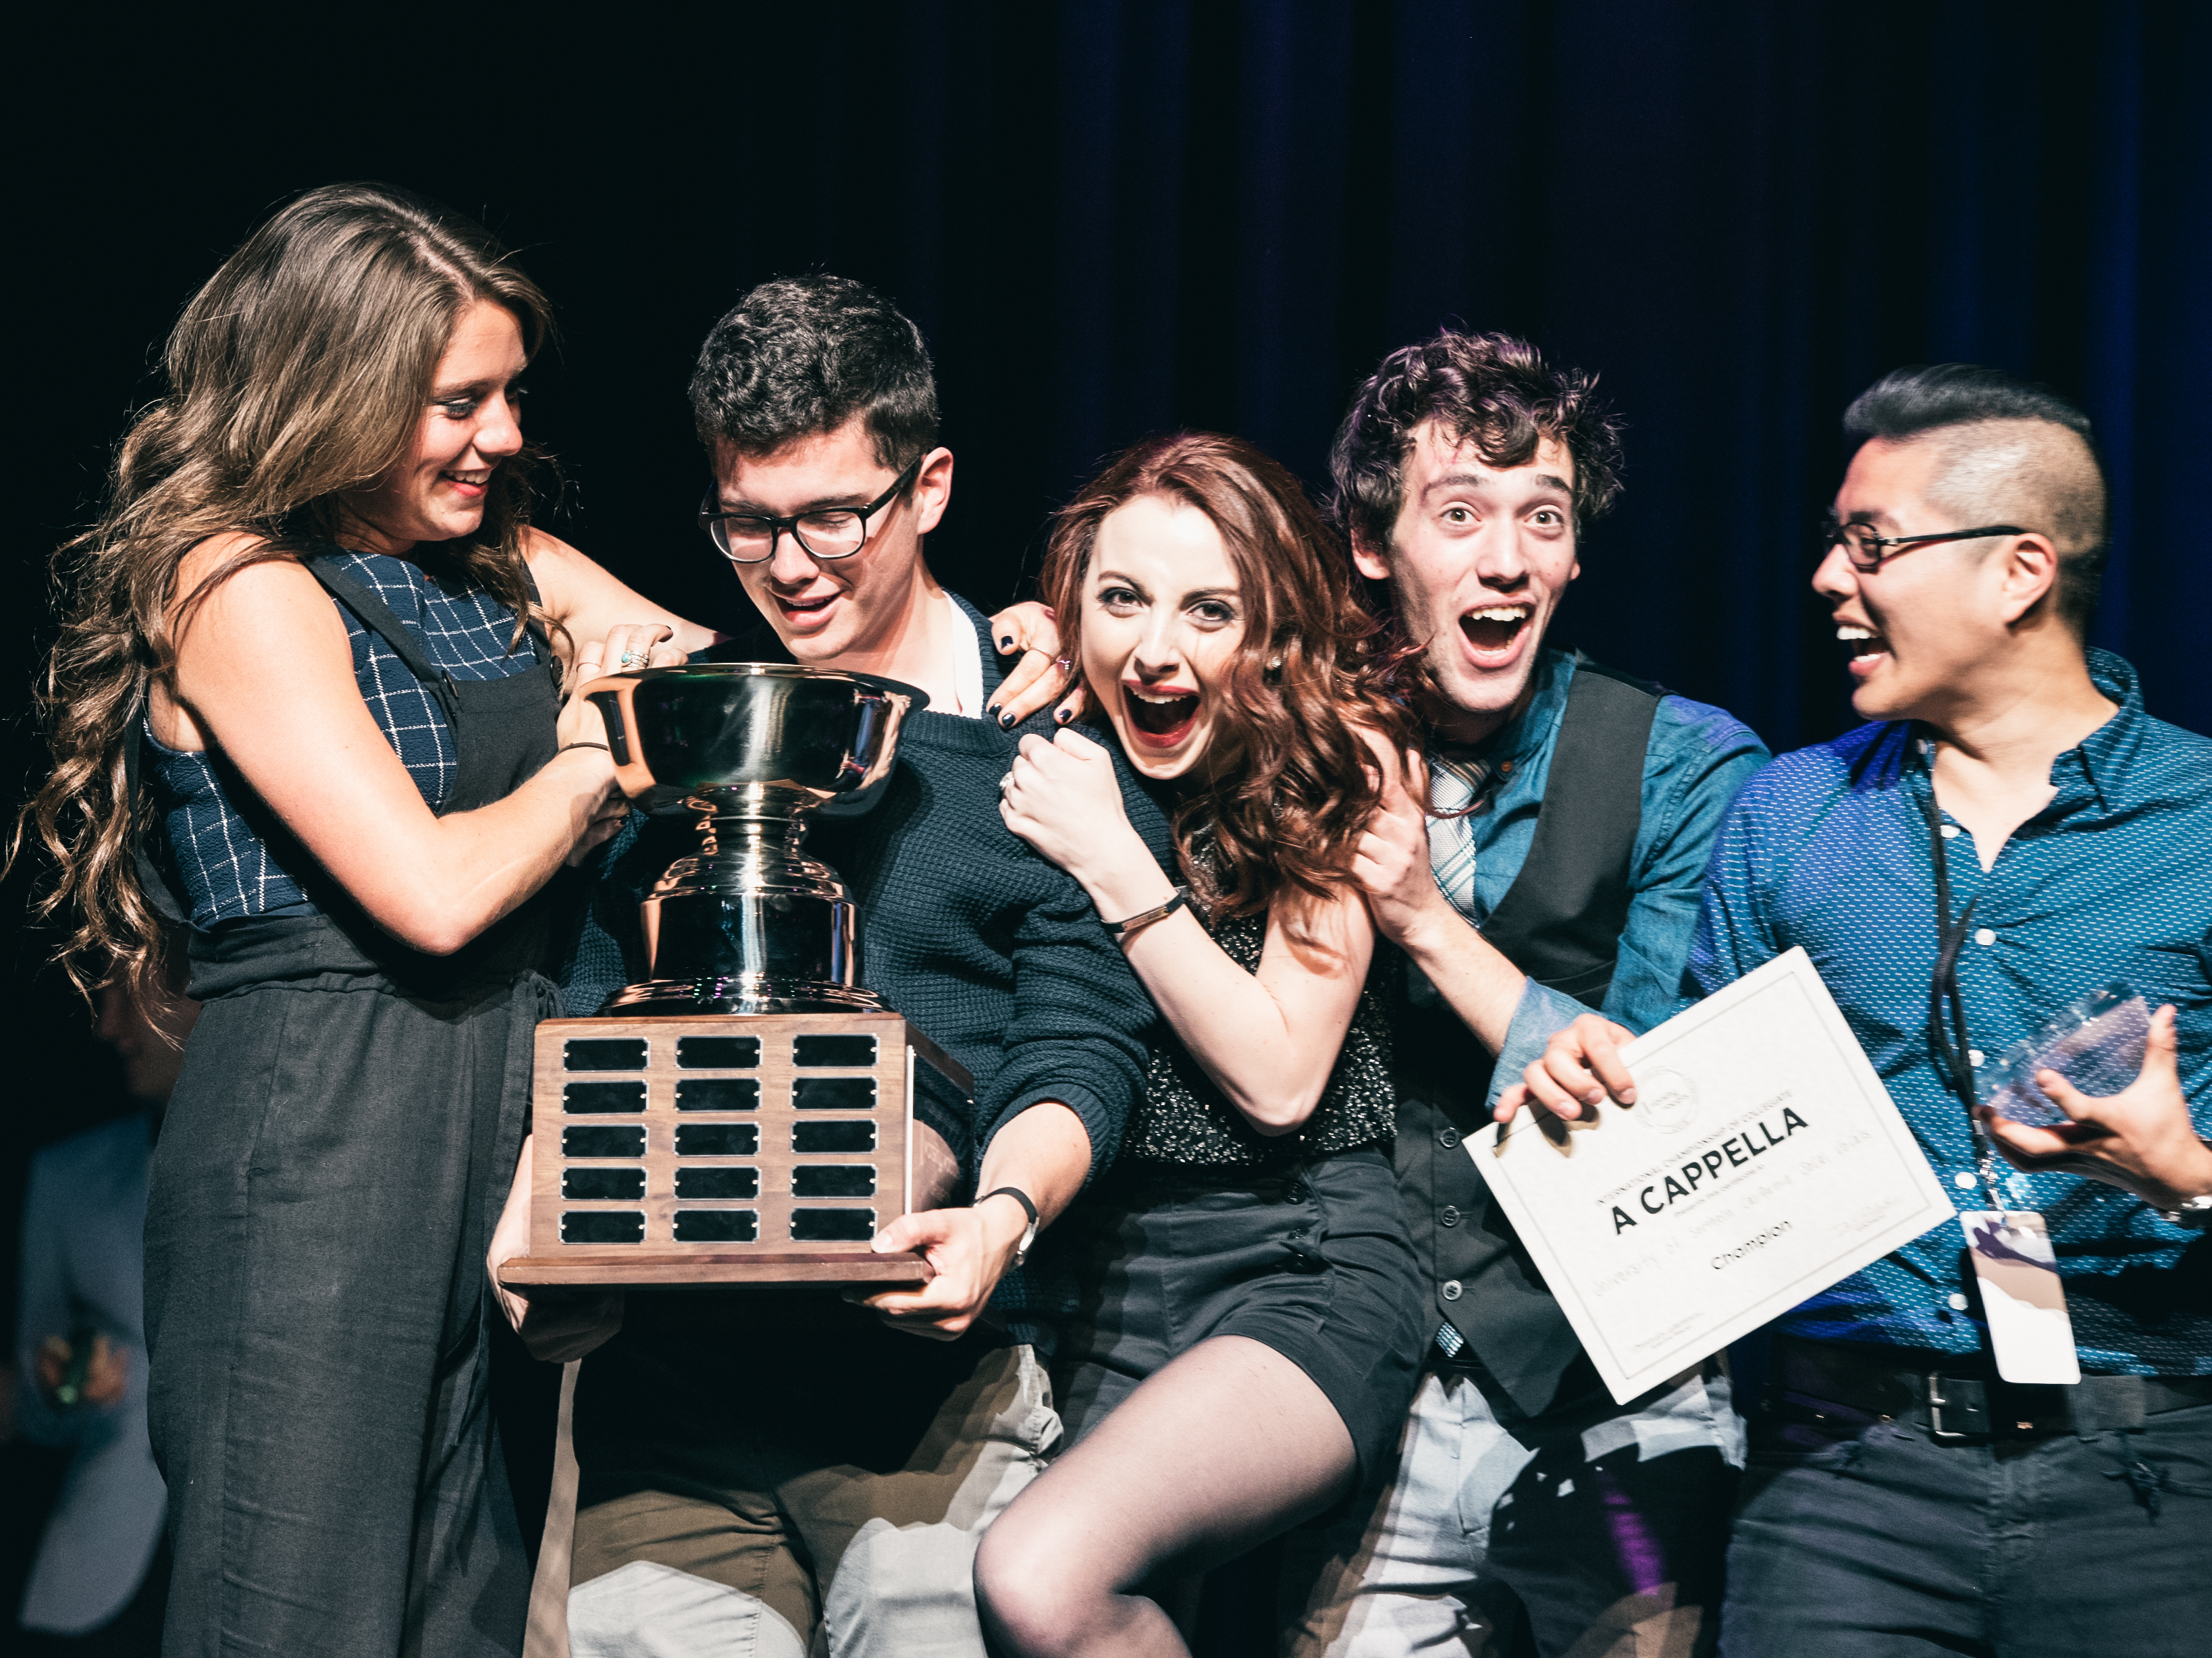 The Hard Work And Close Bonds Of Competitive College A Cappella